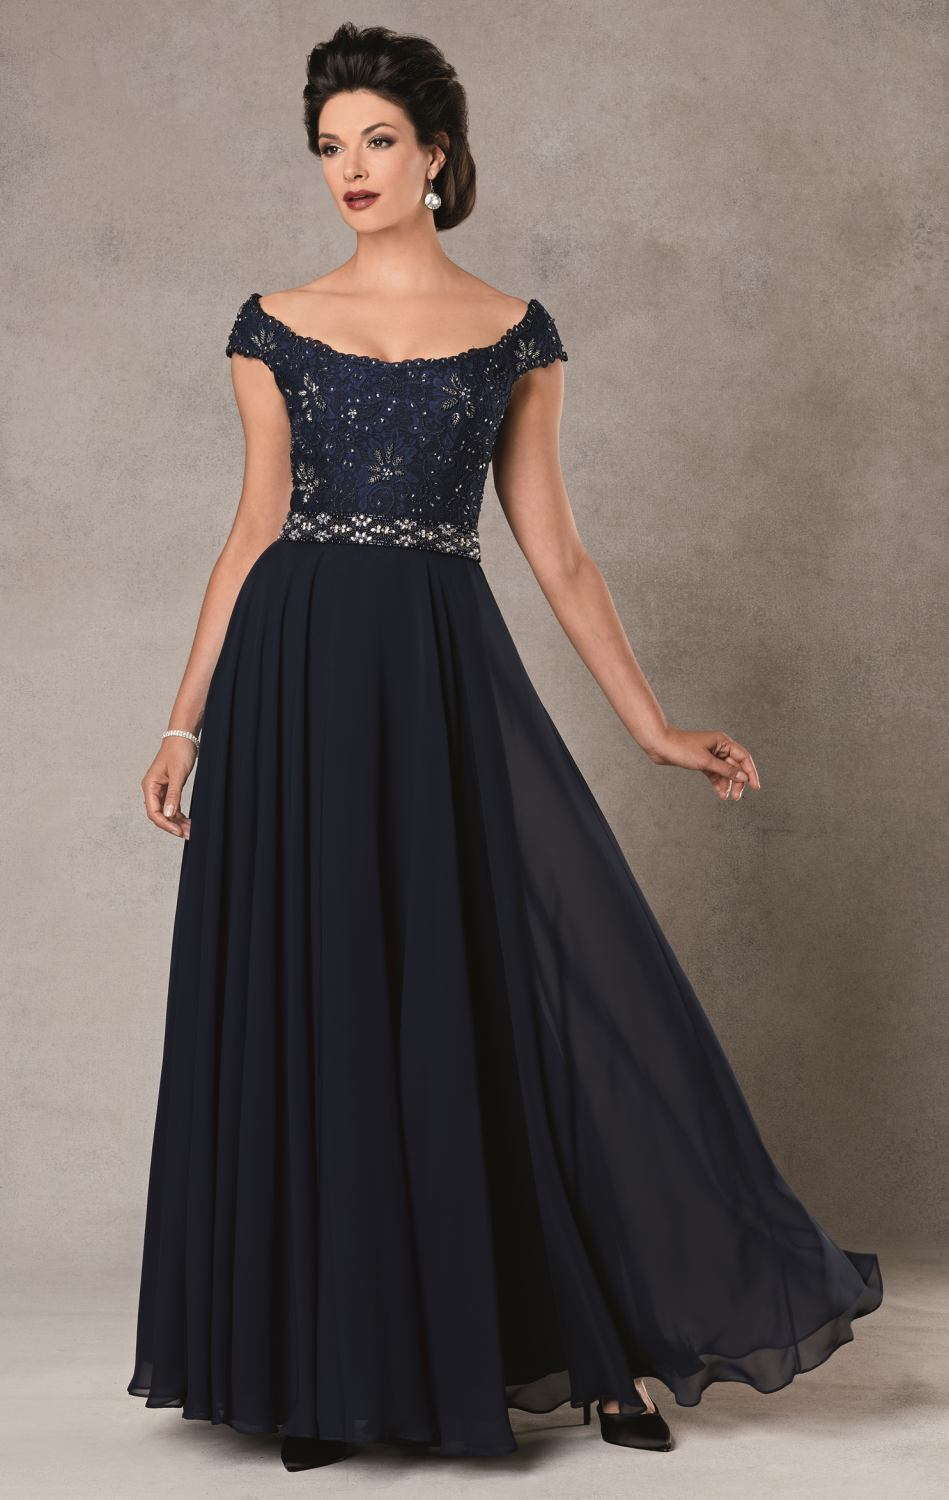 Elegant Fashion Chiffon Crystal Sheath Floor Length Mother Of The Bride Dresses Pant Suits Plus Size For Beach Weddings